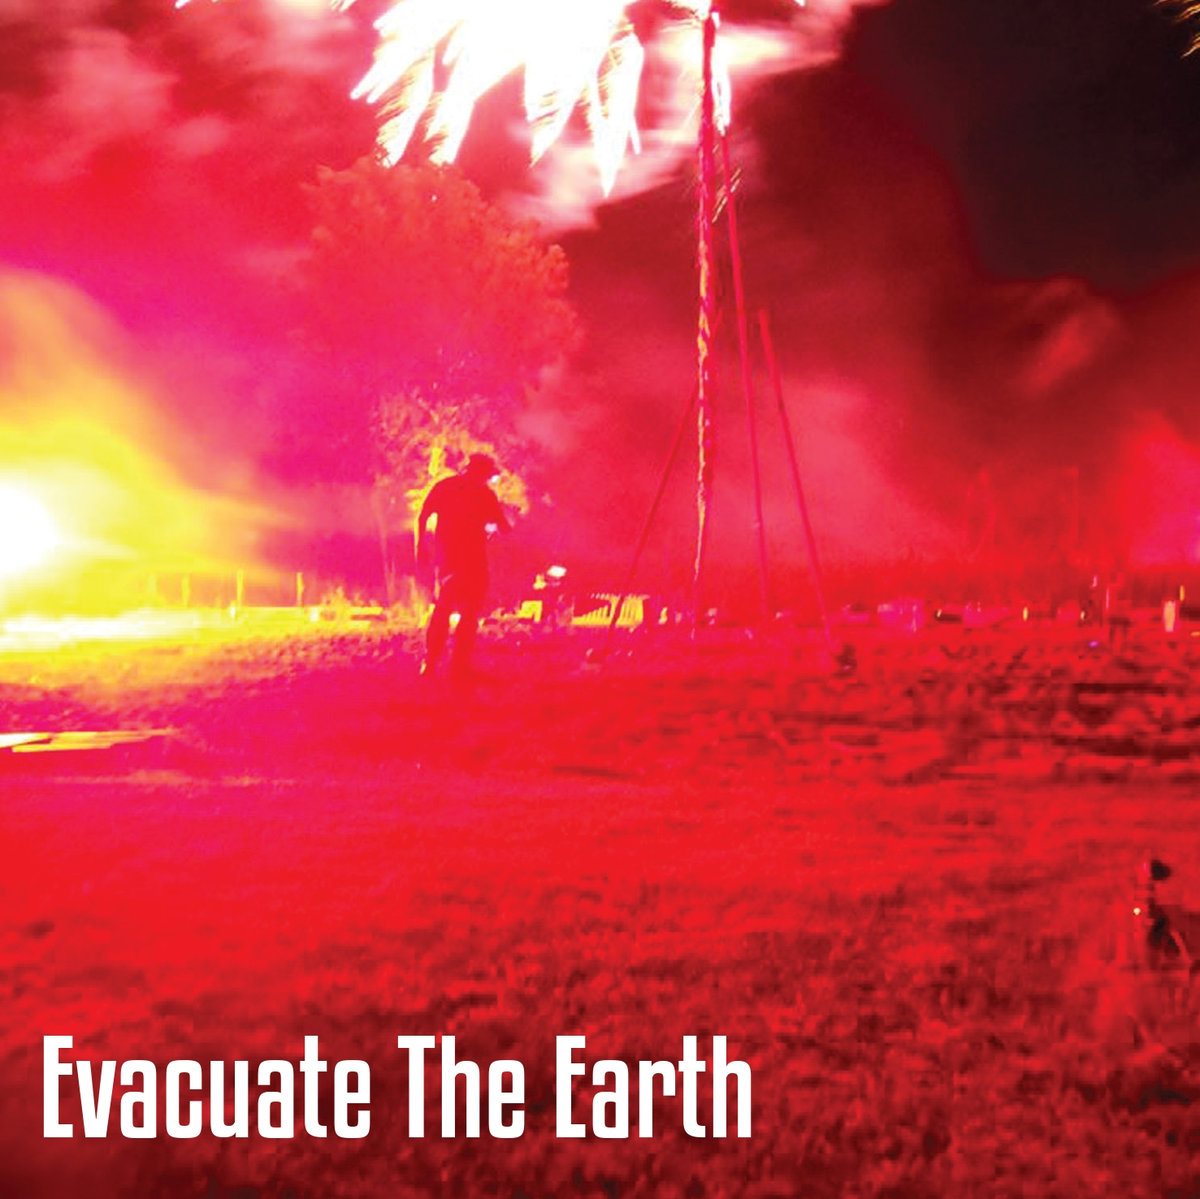 Evacuate the Earth — Evacuate the Earth